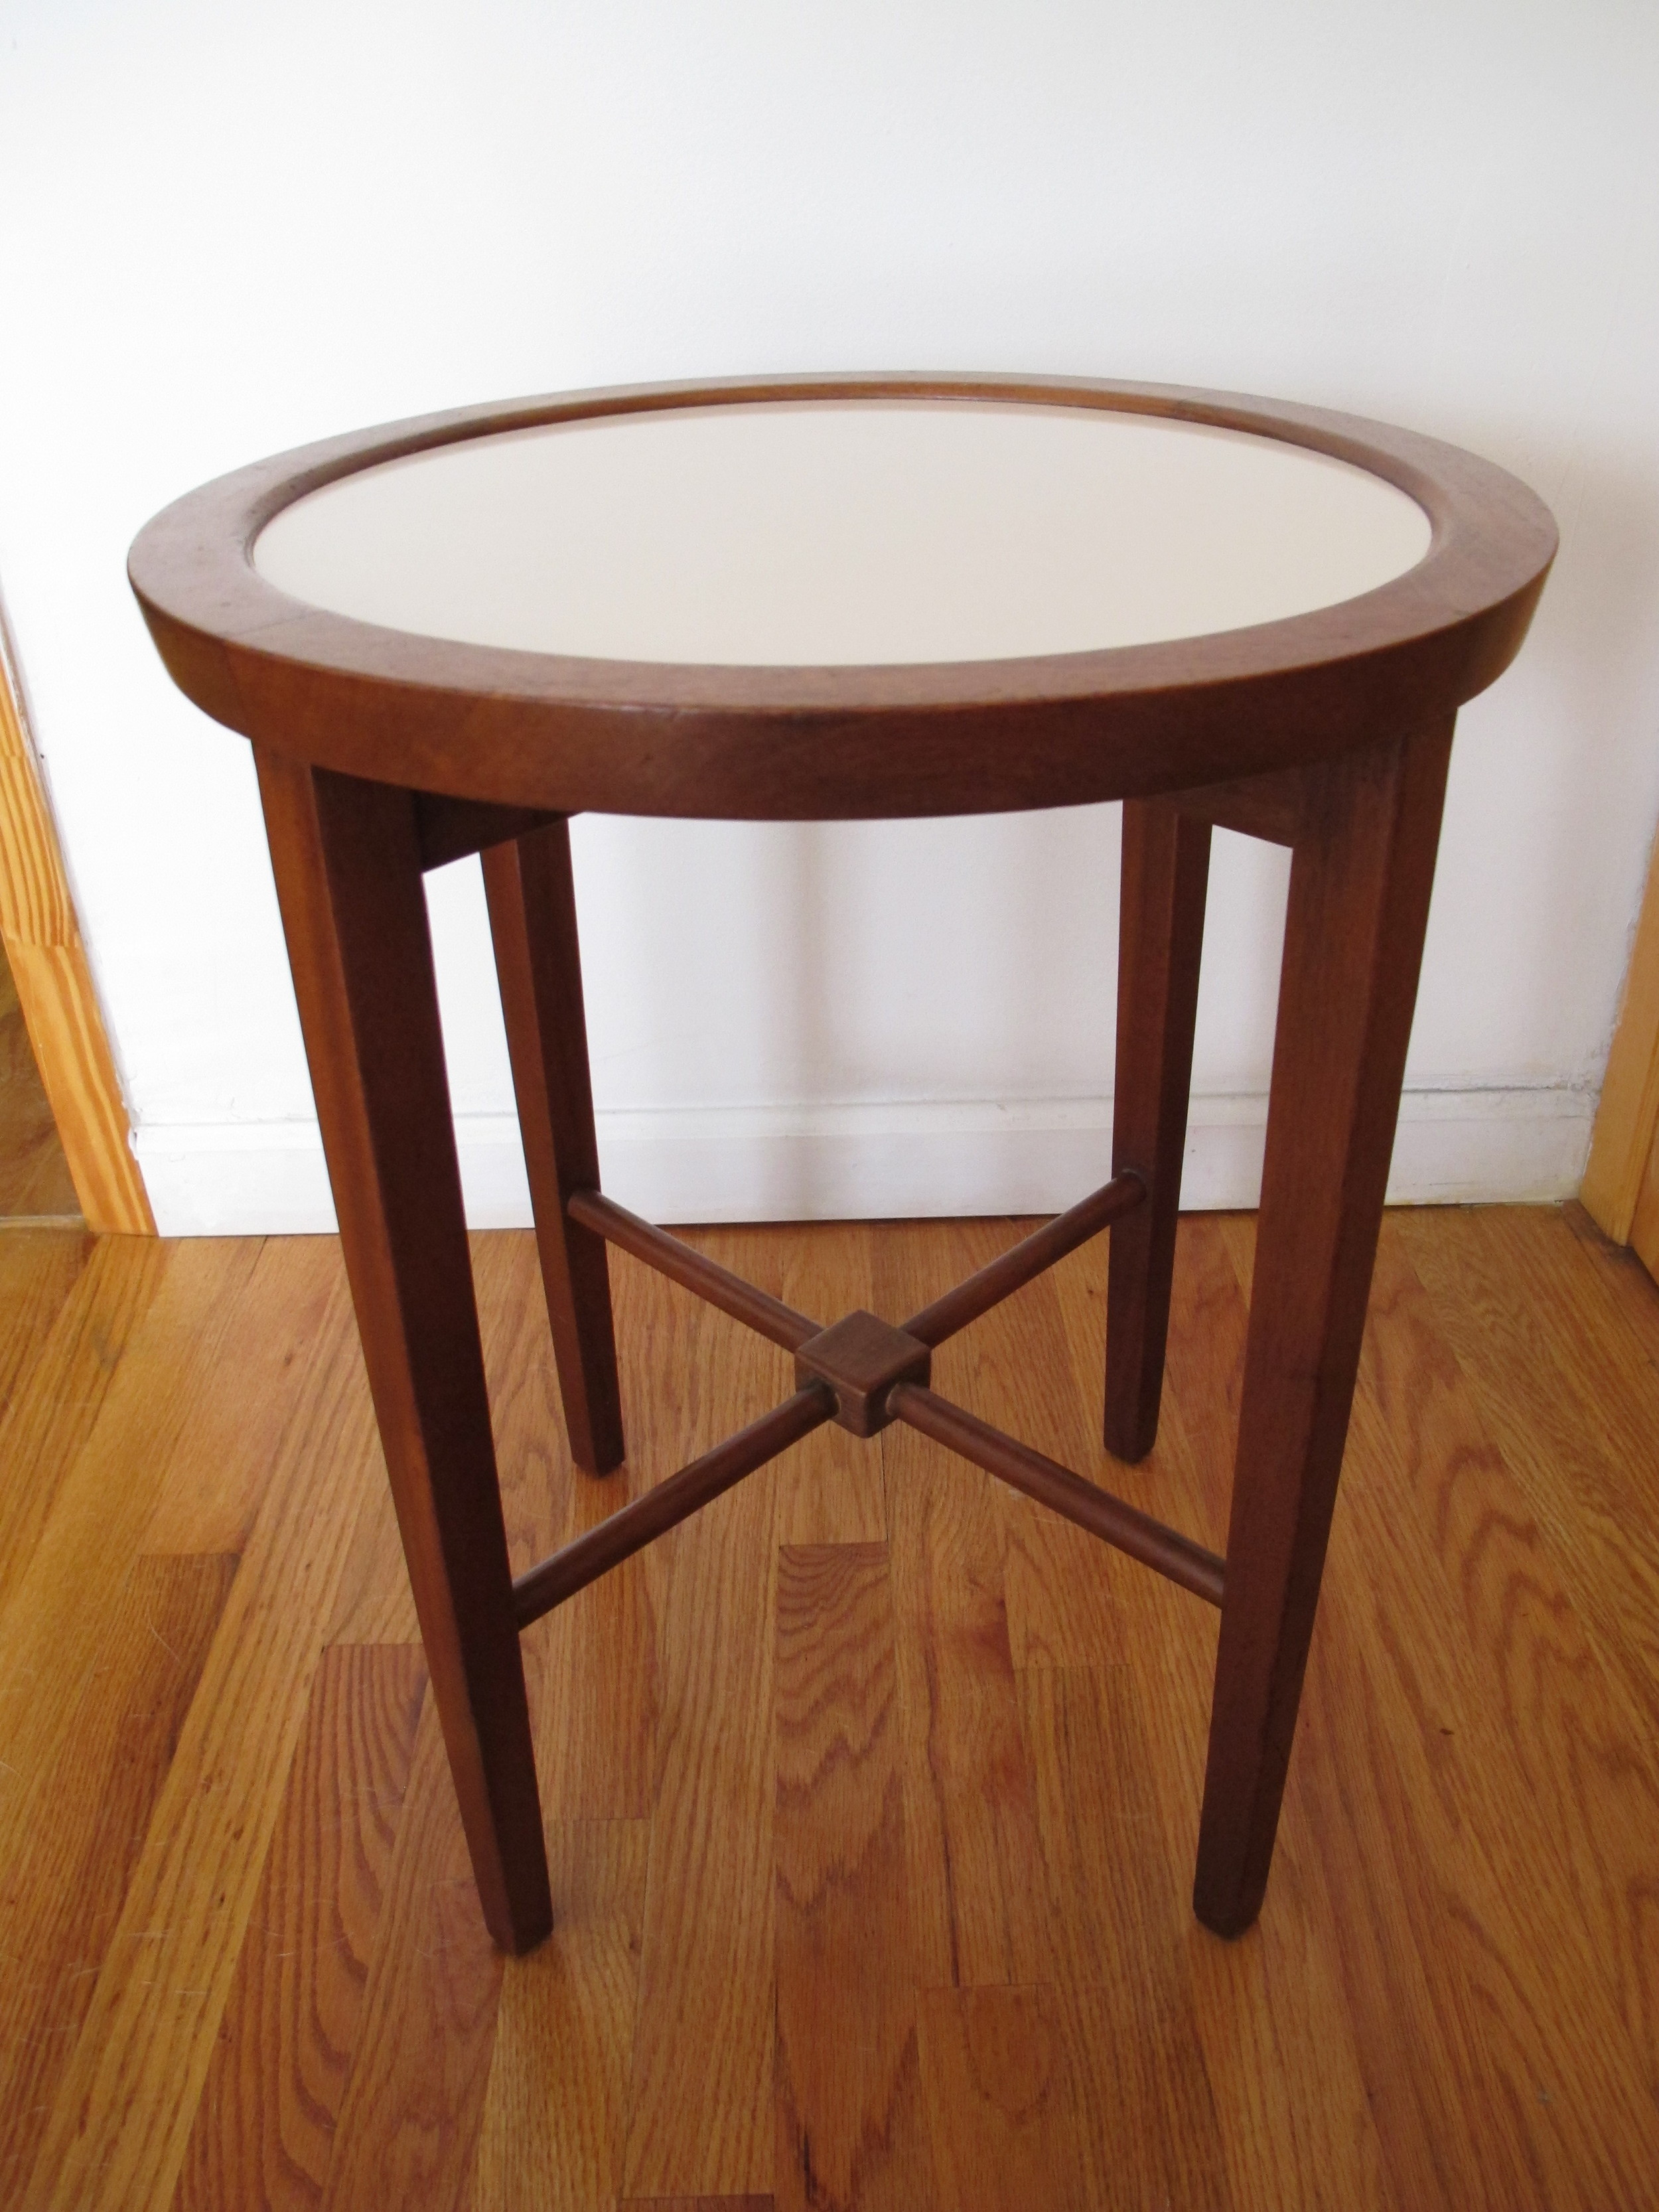 MID CENTURY ROUND SIDE TABLE